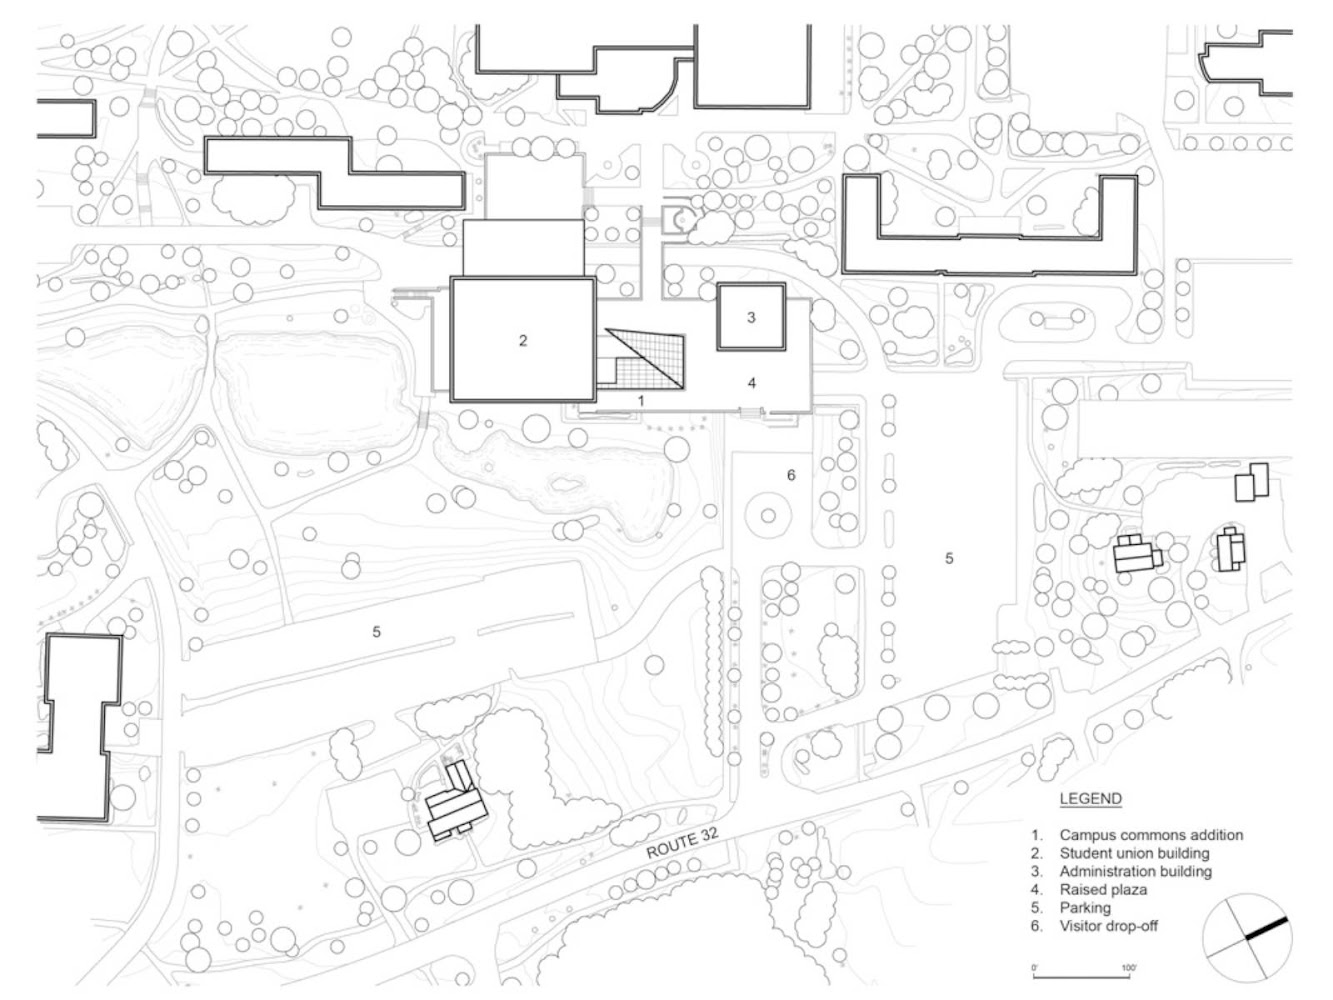 13-Student-Union-Building-Addition-by-ikon.5-architects